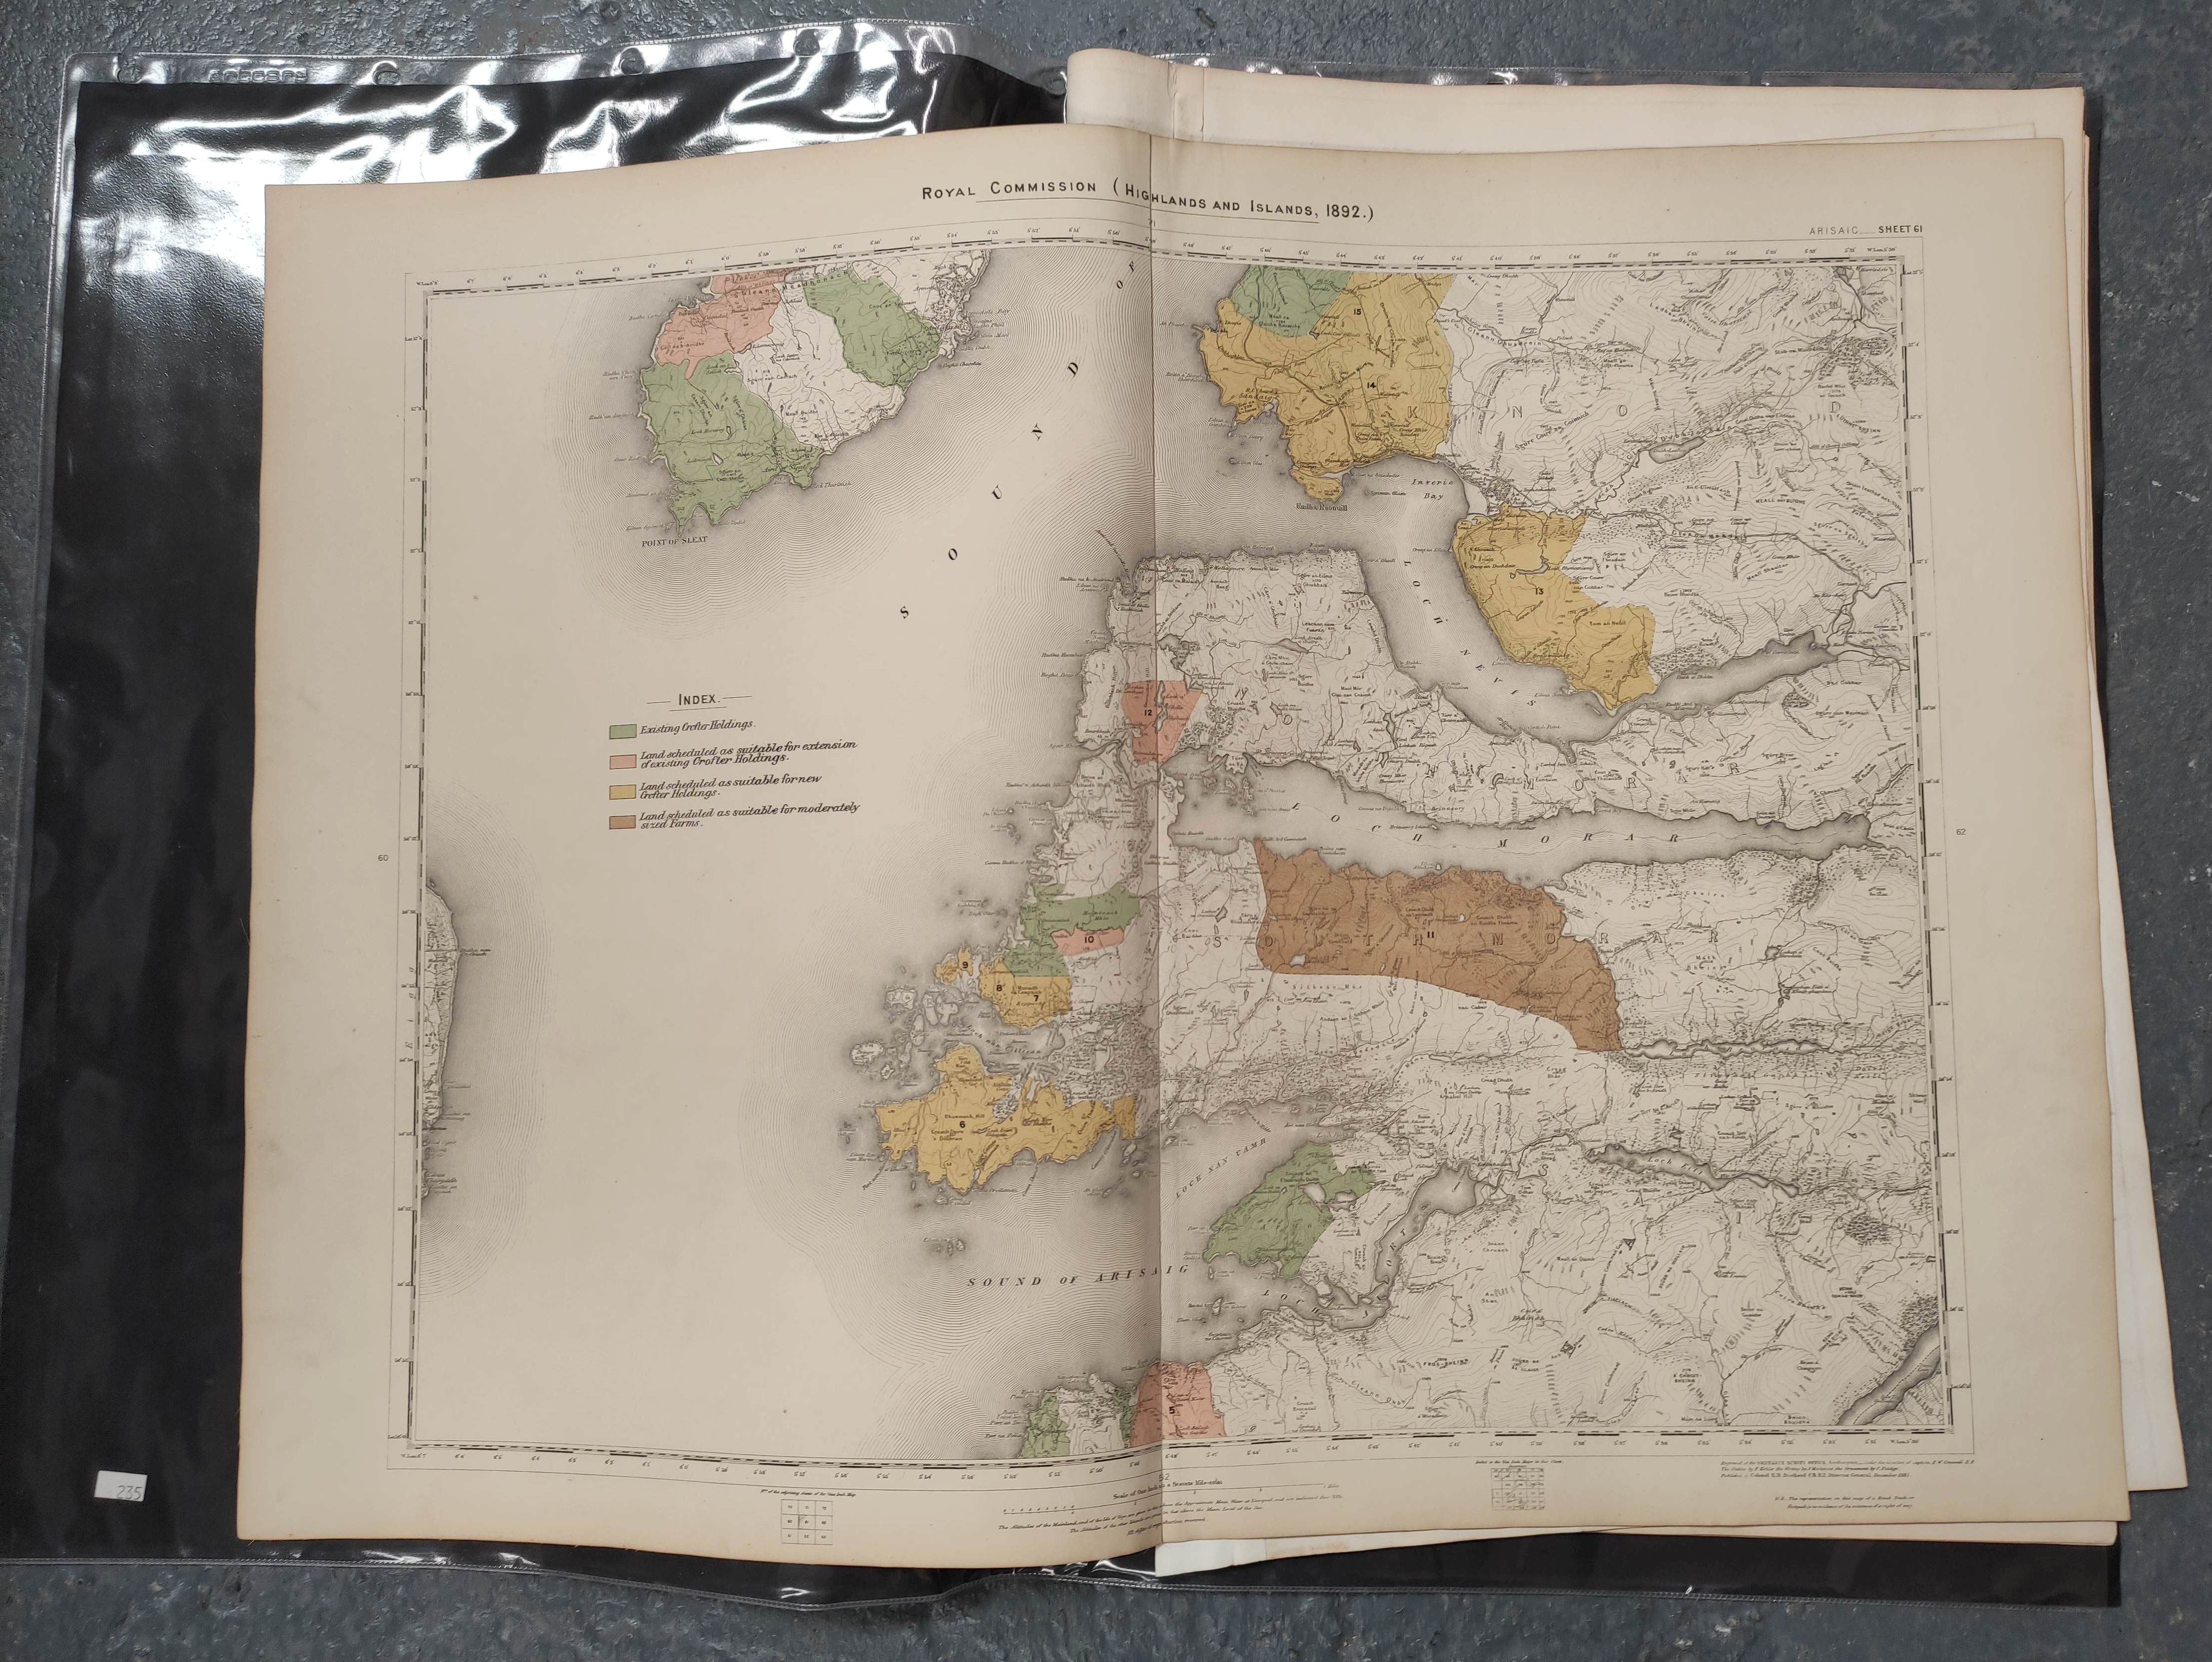 JOHNSON W. & A. K.Map of the County of Inverness with the railways. 4 part eng. map, hand col.